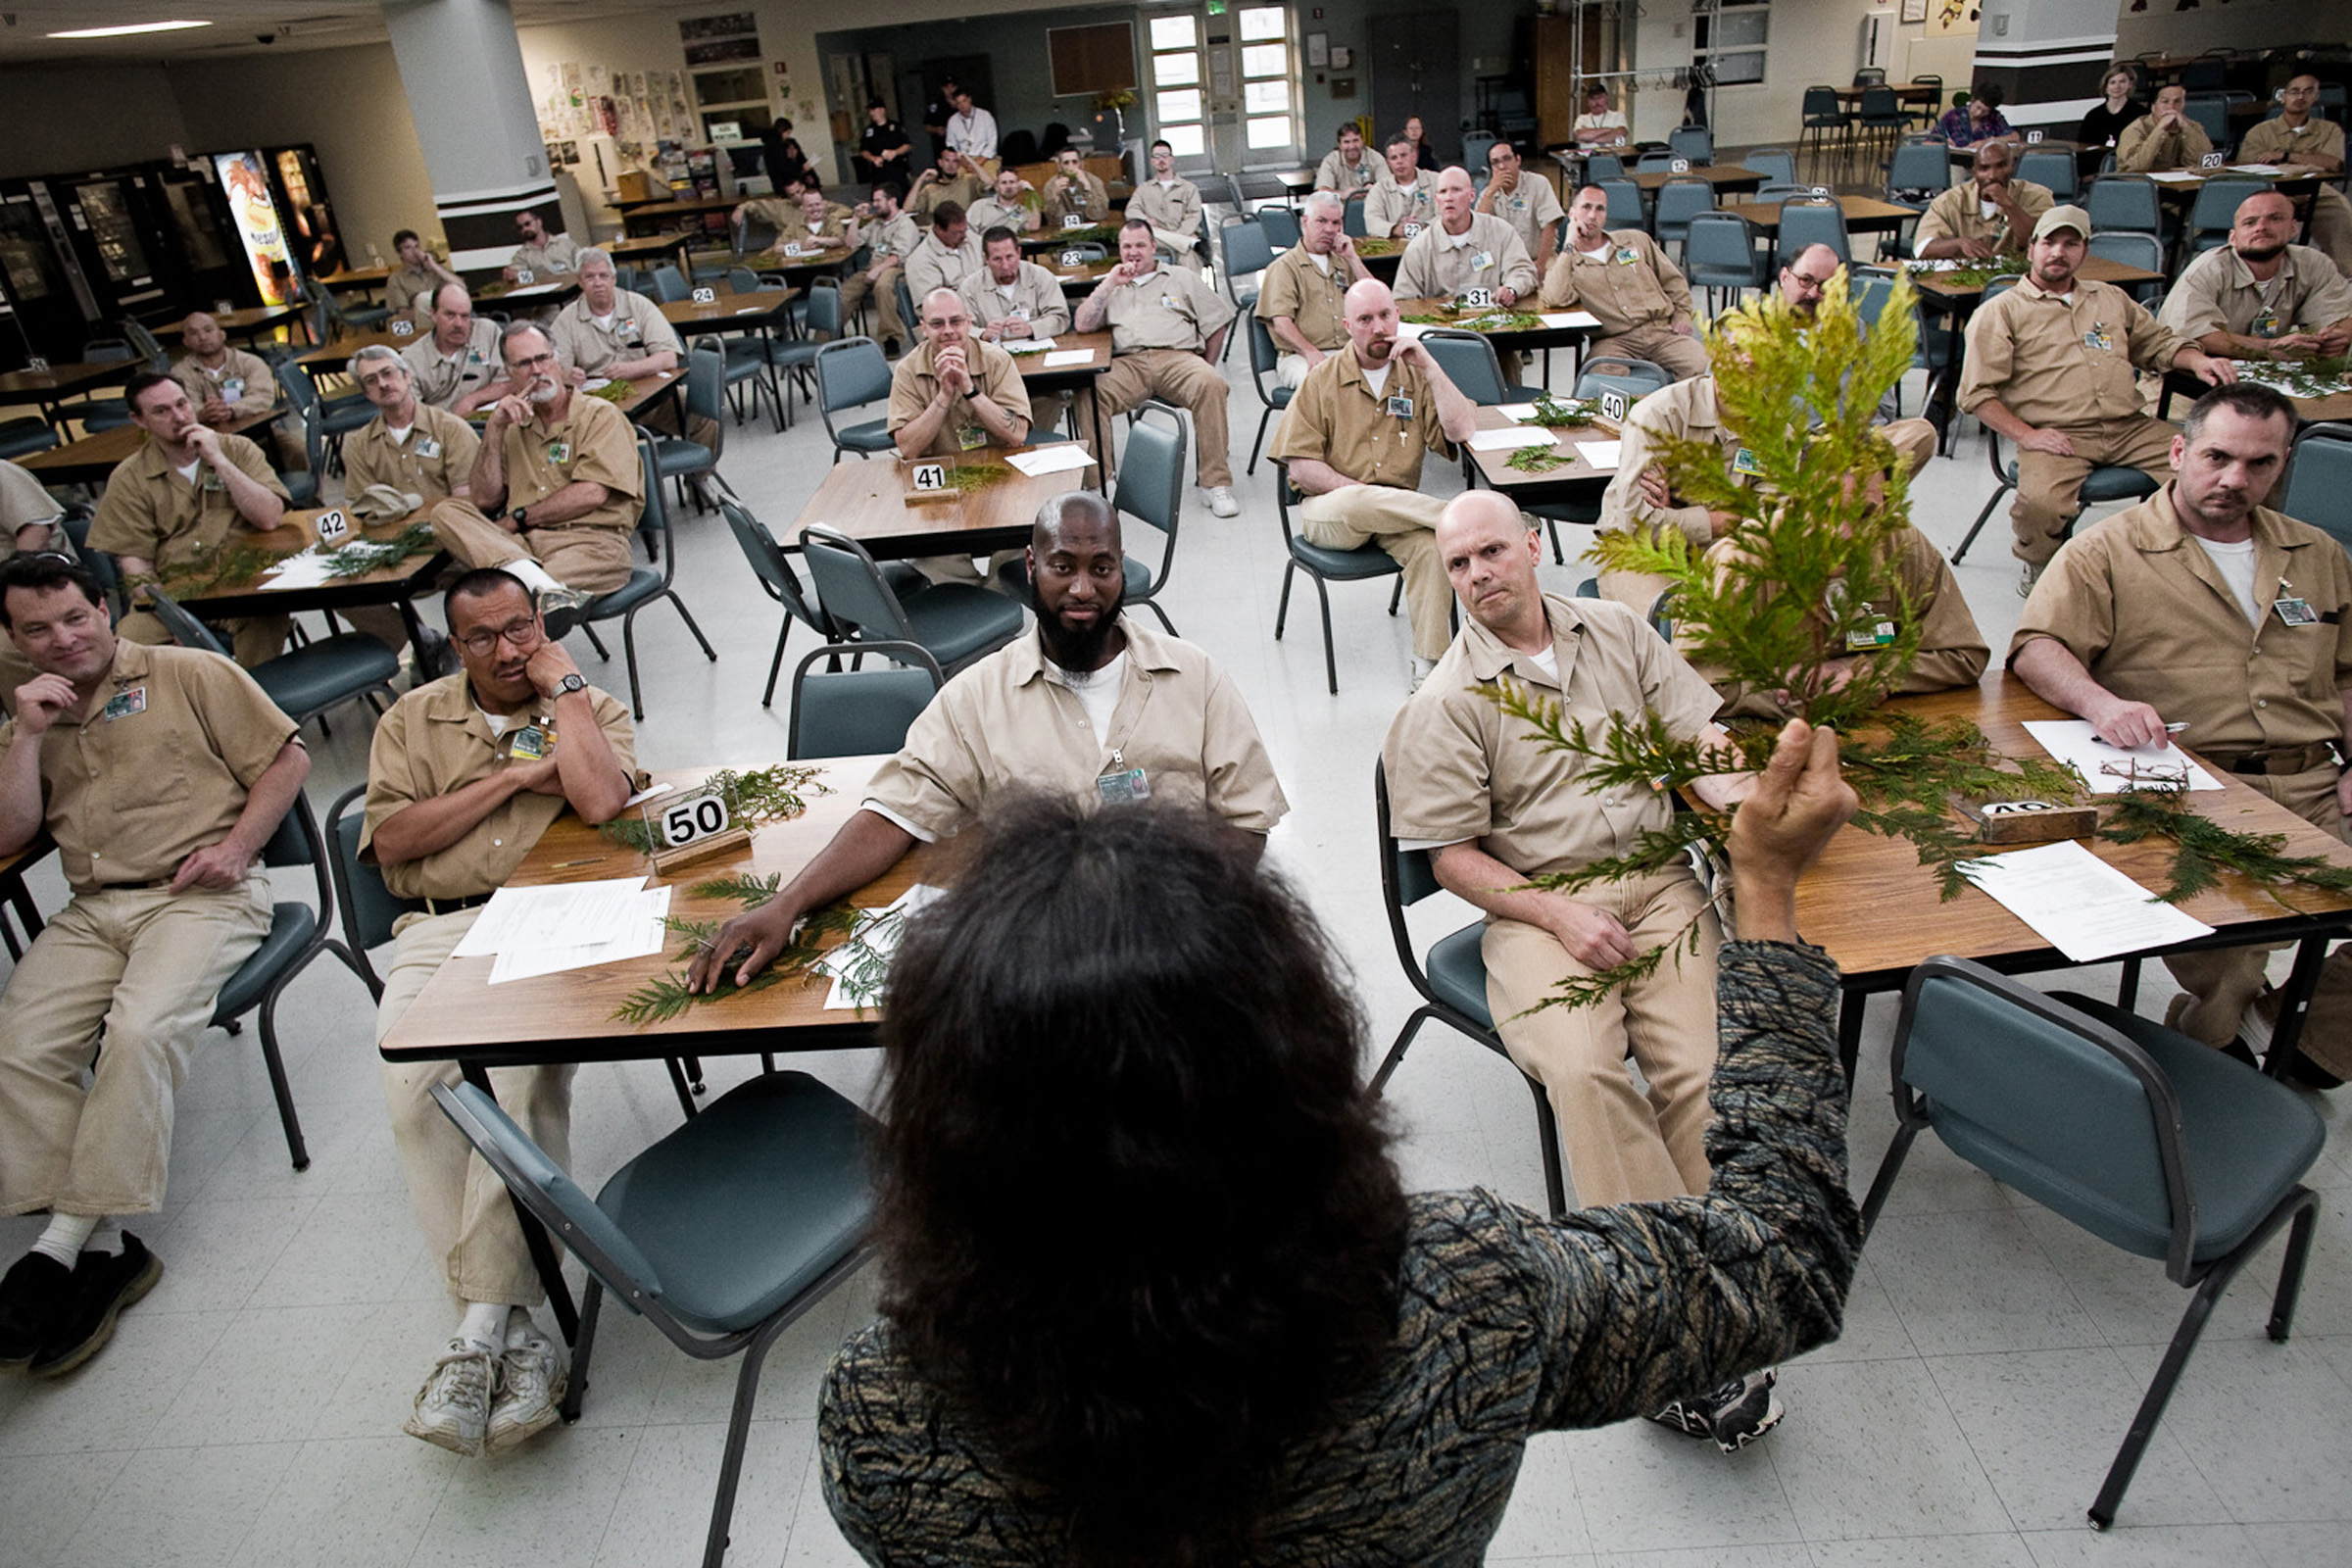 Biologist Nalini Nadkarni presents a lecture on trees to prison inmates in Washington state. Nalini, who now directs the University of Utah's Center for Science and Mathematics Education, is launching a similar project aimed at teaching science and environmental sustainability skills to prisoners in Utah.